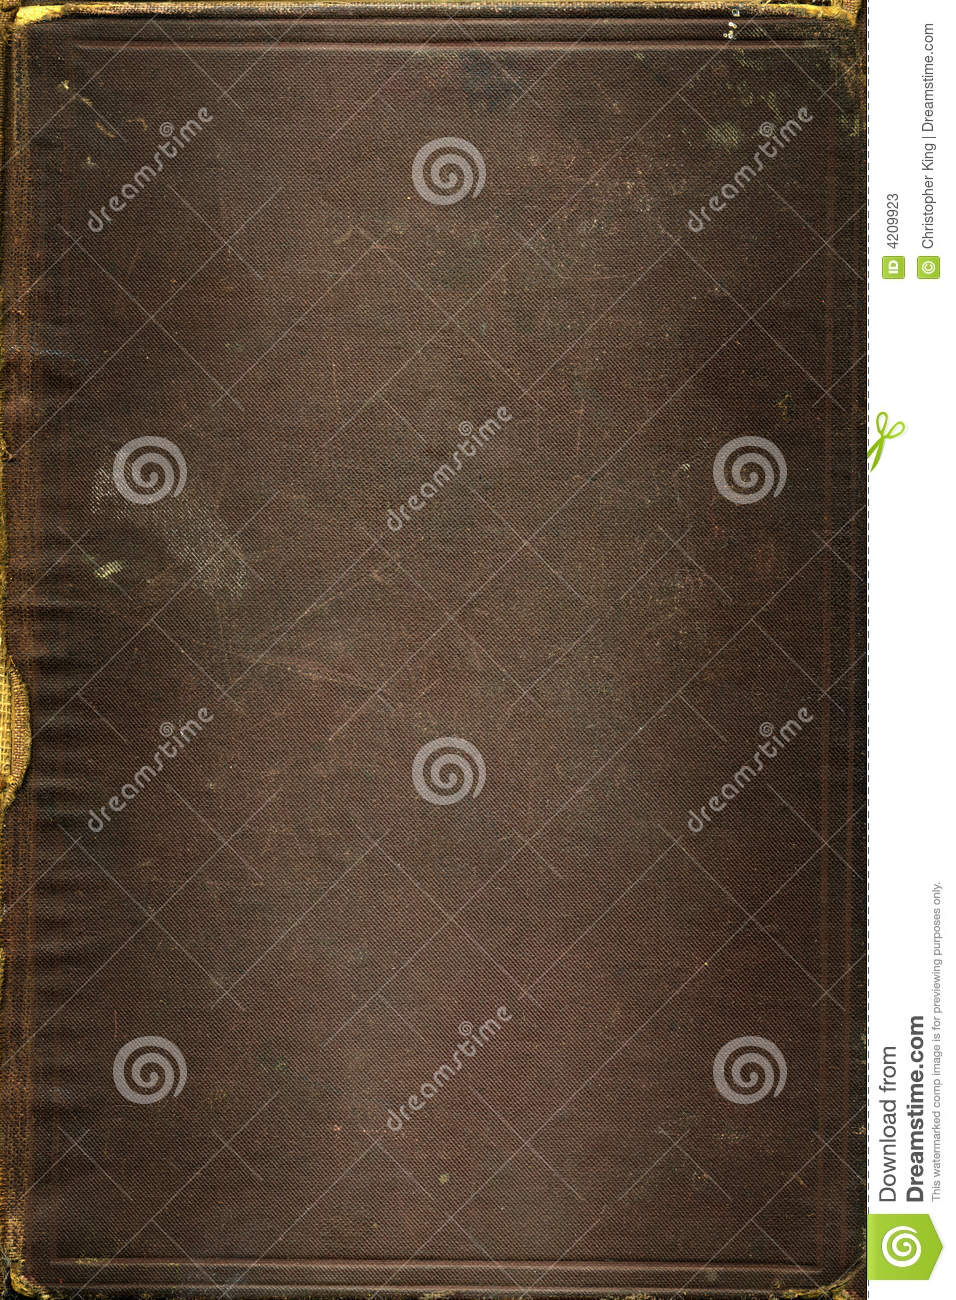 Book Cover Texture Ds Max : Old brown leather book texture stock image